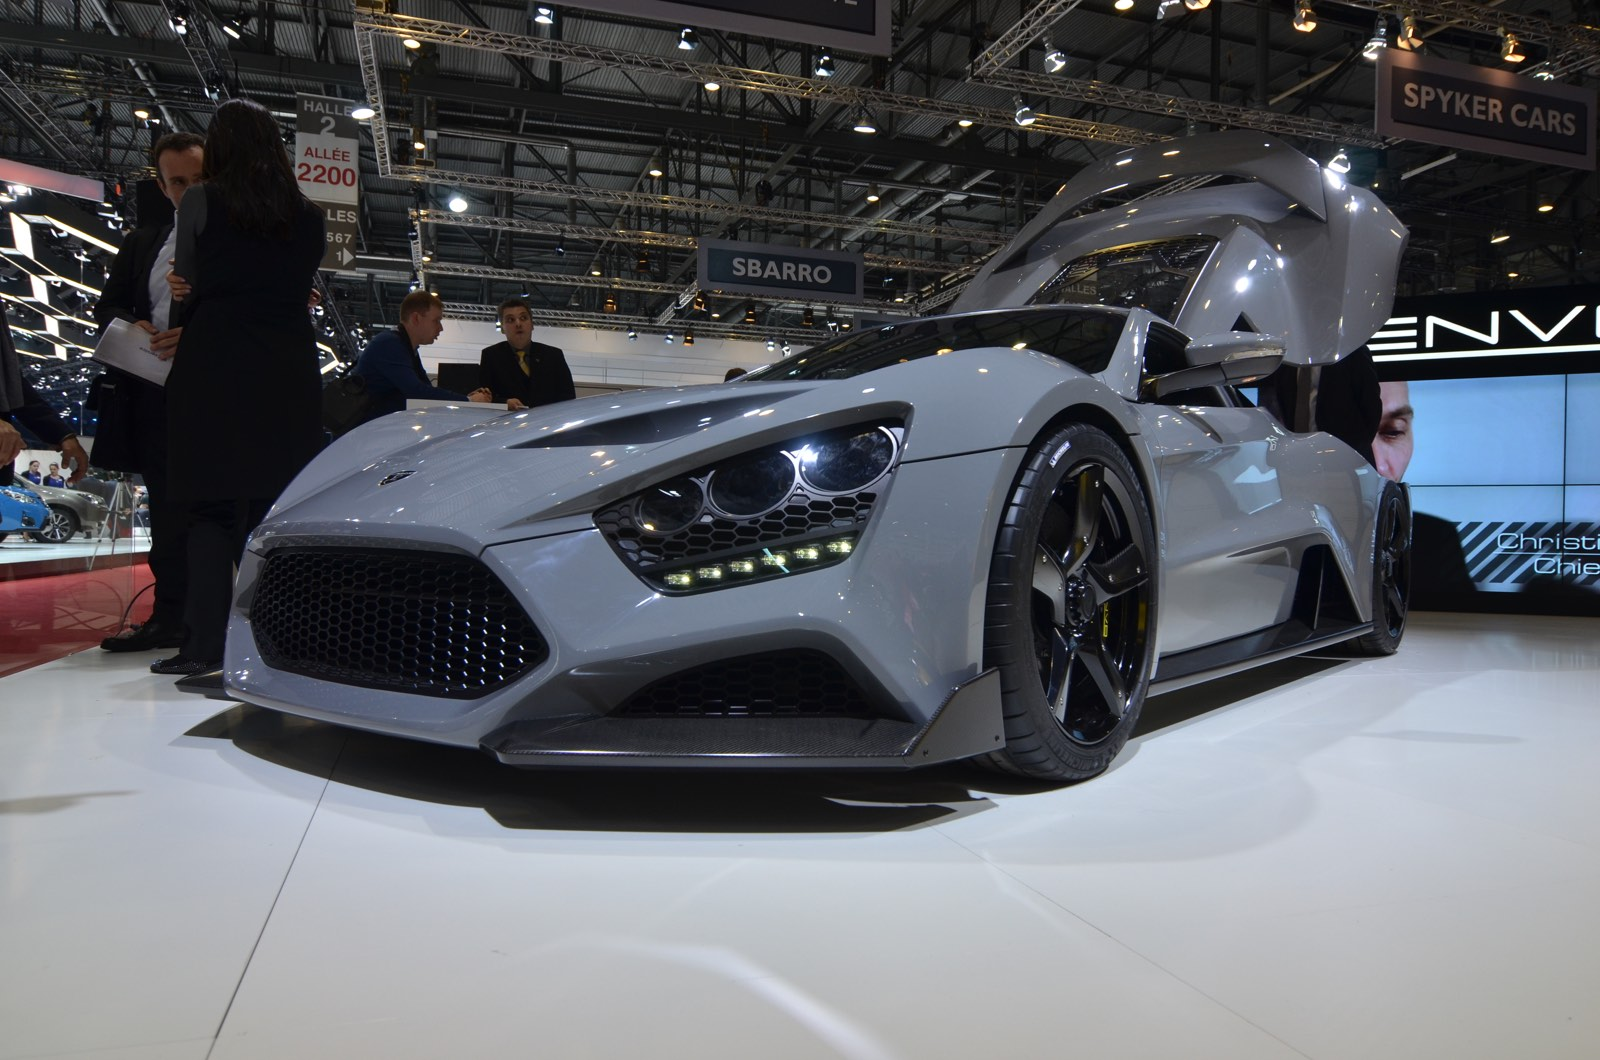 Top 30 Most Expensive Cars in the World 2016/17 - GTspirit